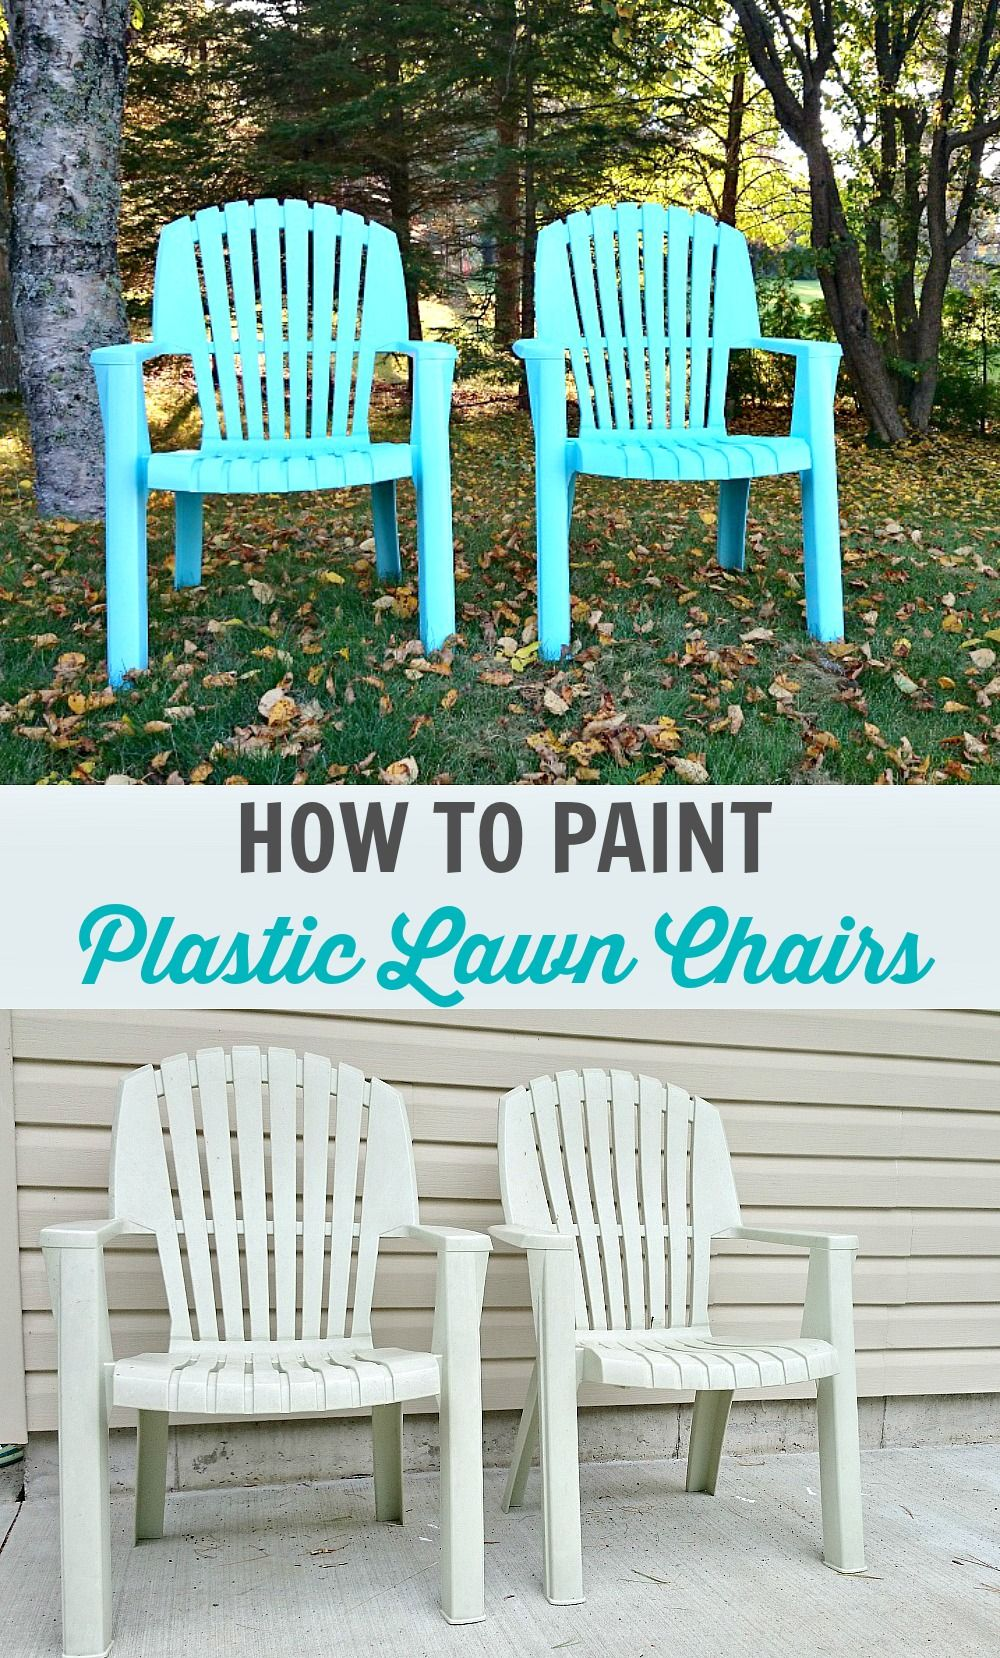 Charmant How To Spray Paint Plastic Lawn Chairs // Tips + Tricks And What Paint To  Use // By @danslelakehouse